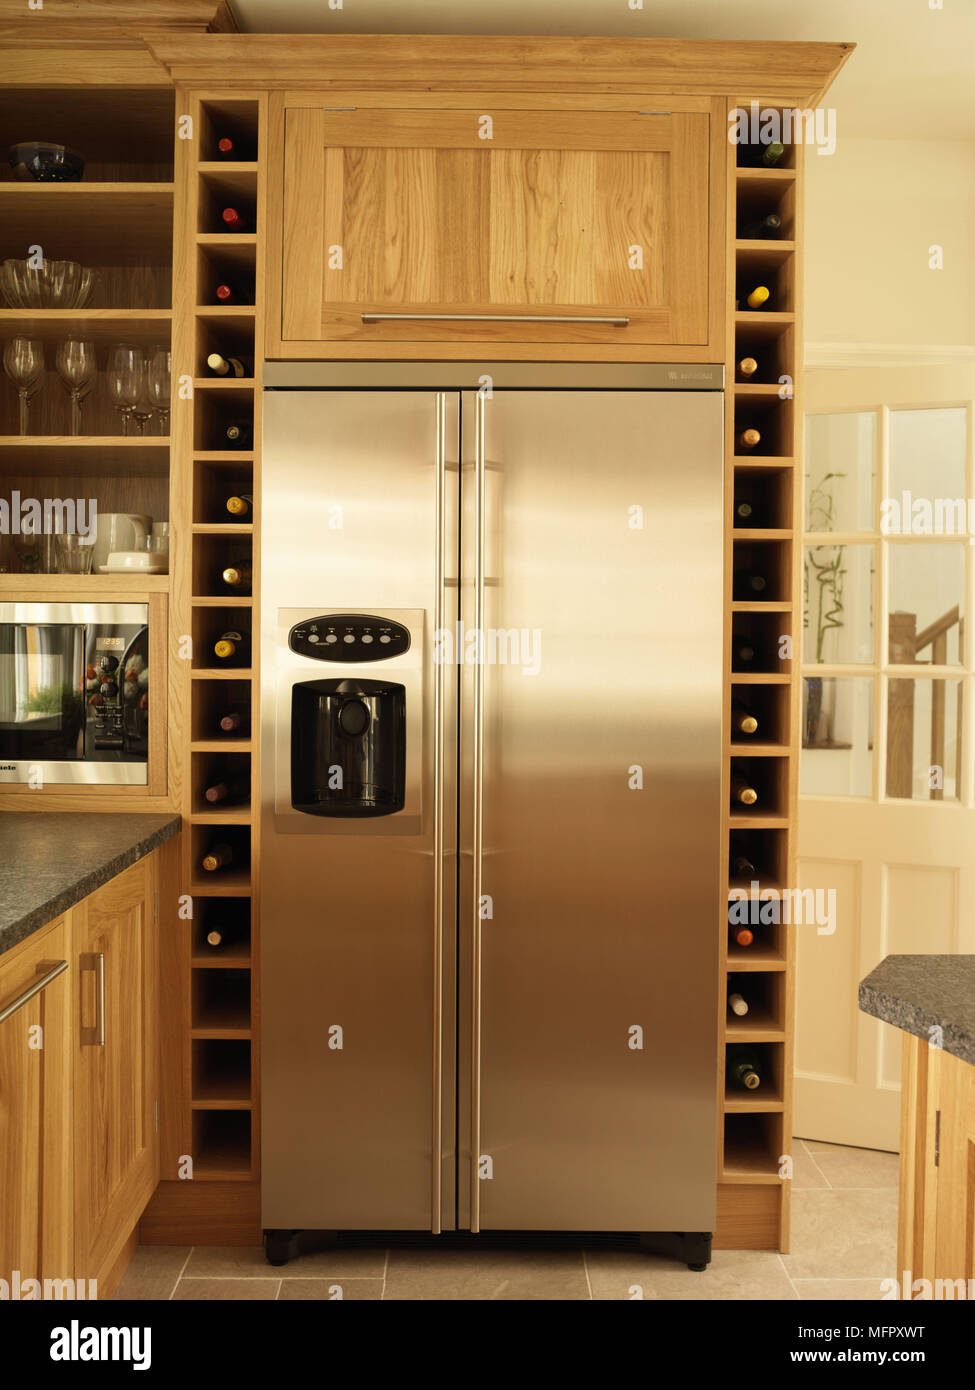 kitchen wine cabinet shelf unit stainless steel fridge and built in wine rack storage in 22189